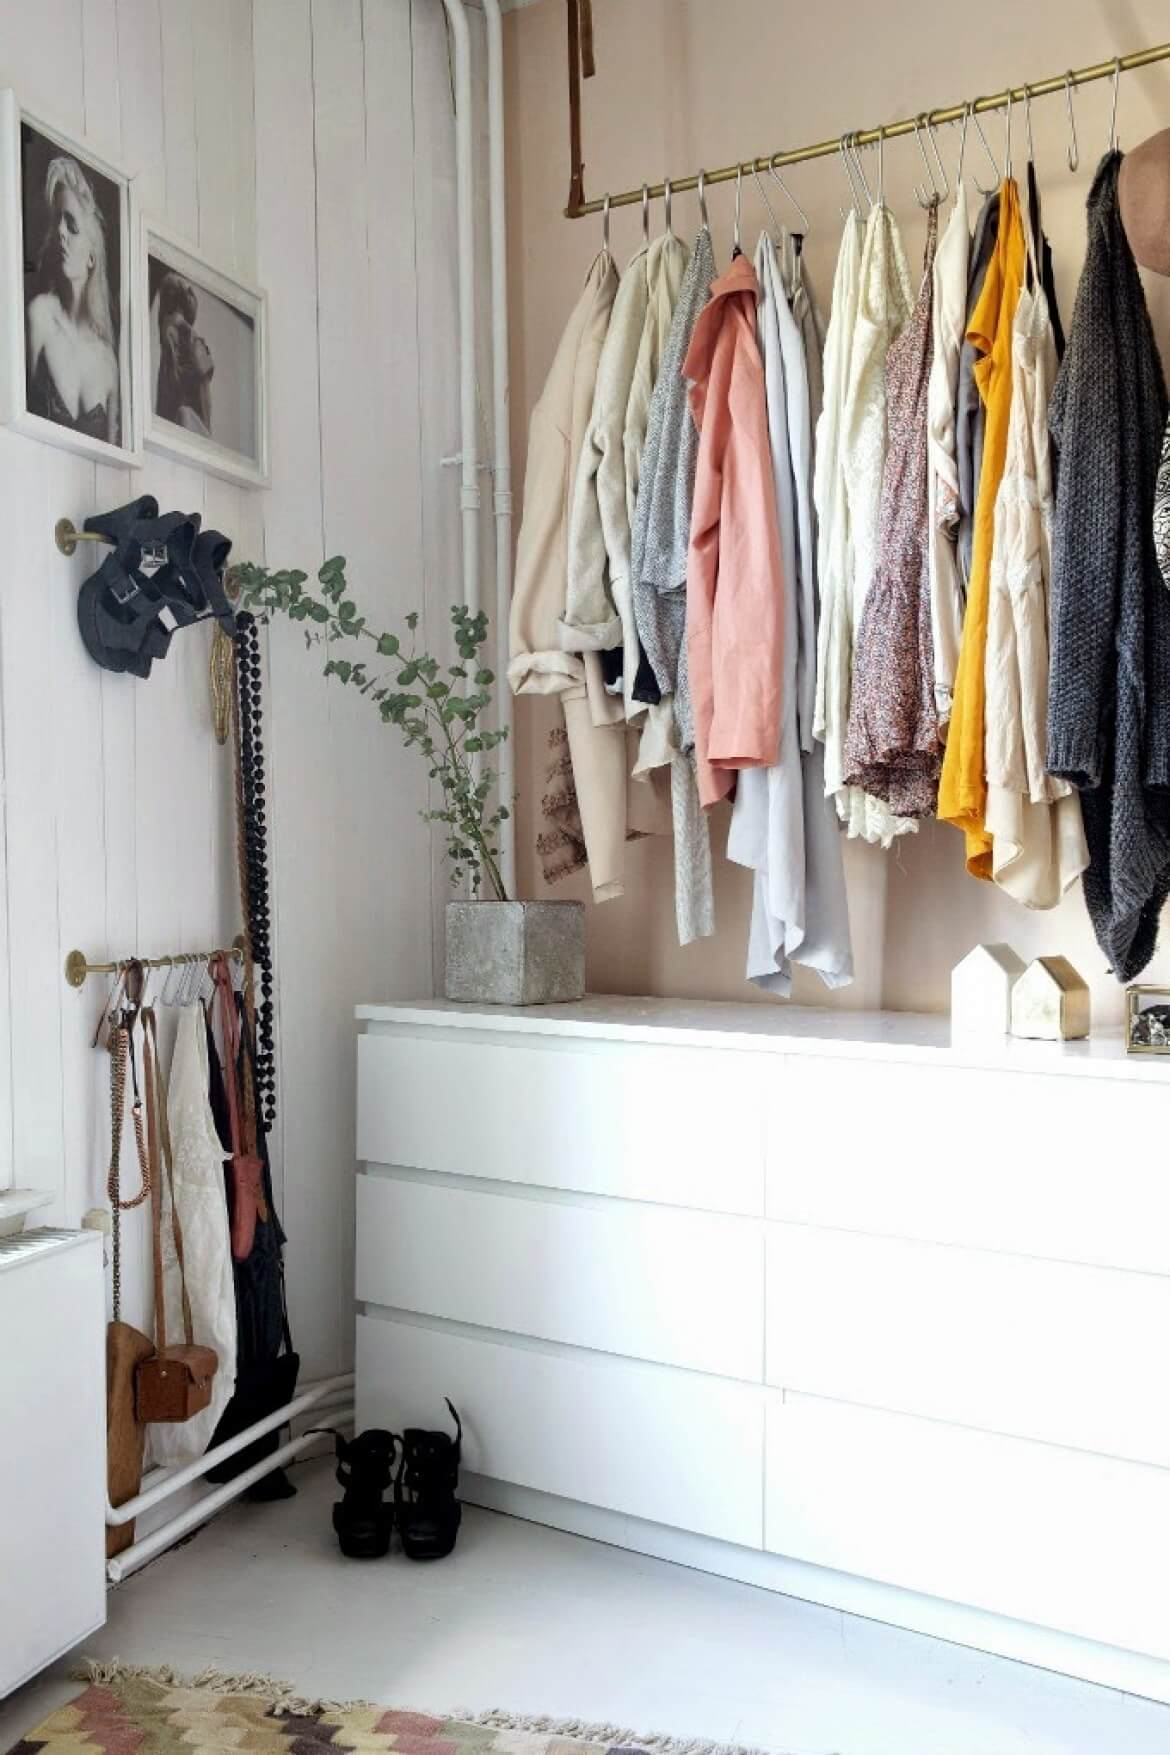 Gold Railing Above Dresser To Hang Clothing